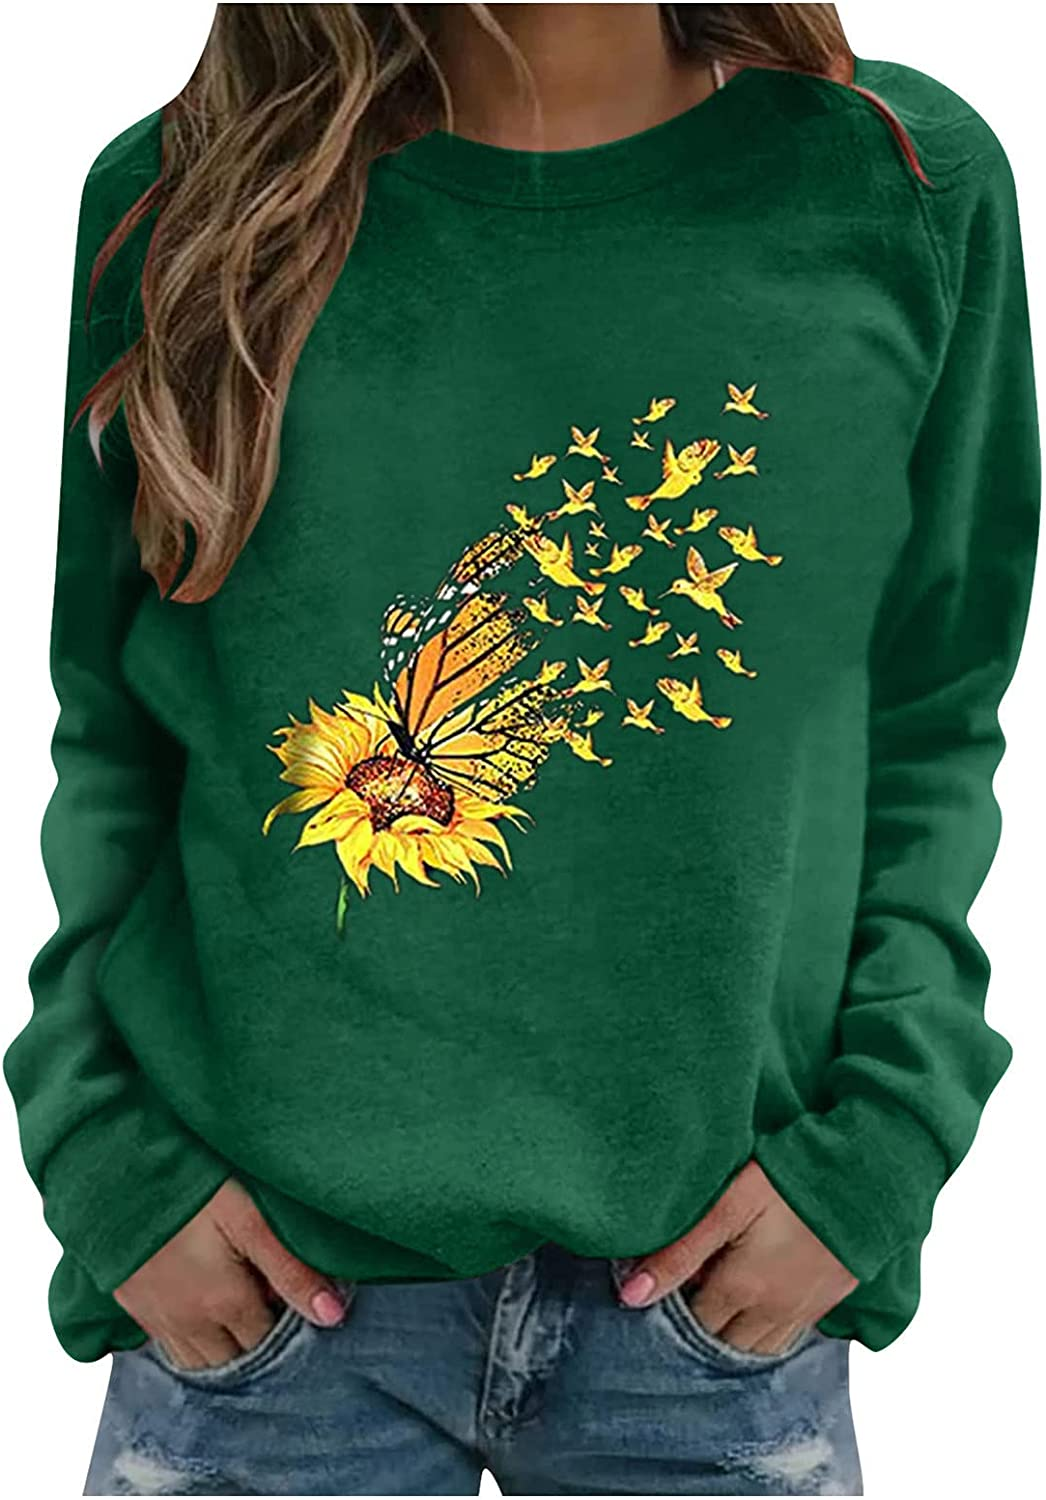 Oiumov Sweatshirts for Women Hoodie Pullover Plus Size Print Long Sleeve Tops Pullover Jumper Sweater Shirts Blouse